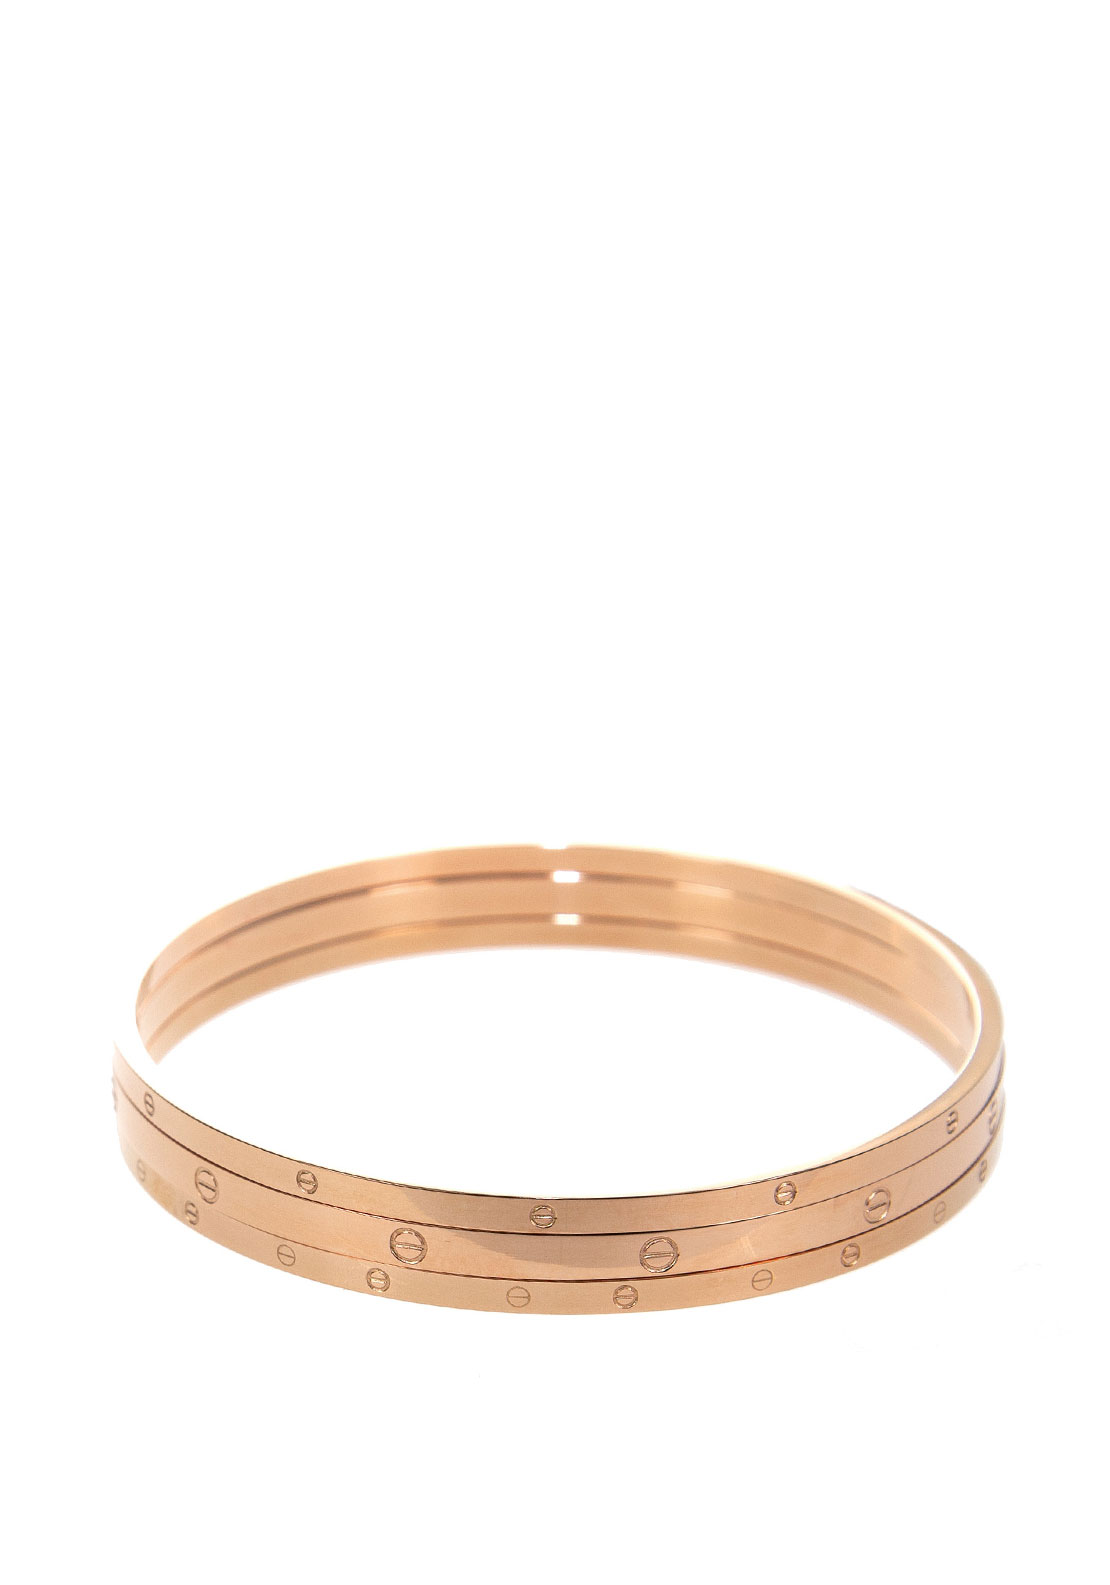 Absolute Plain Tripe Layered Bangles, Rose Gold